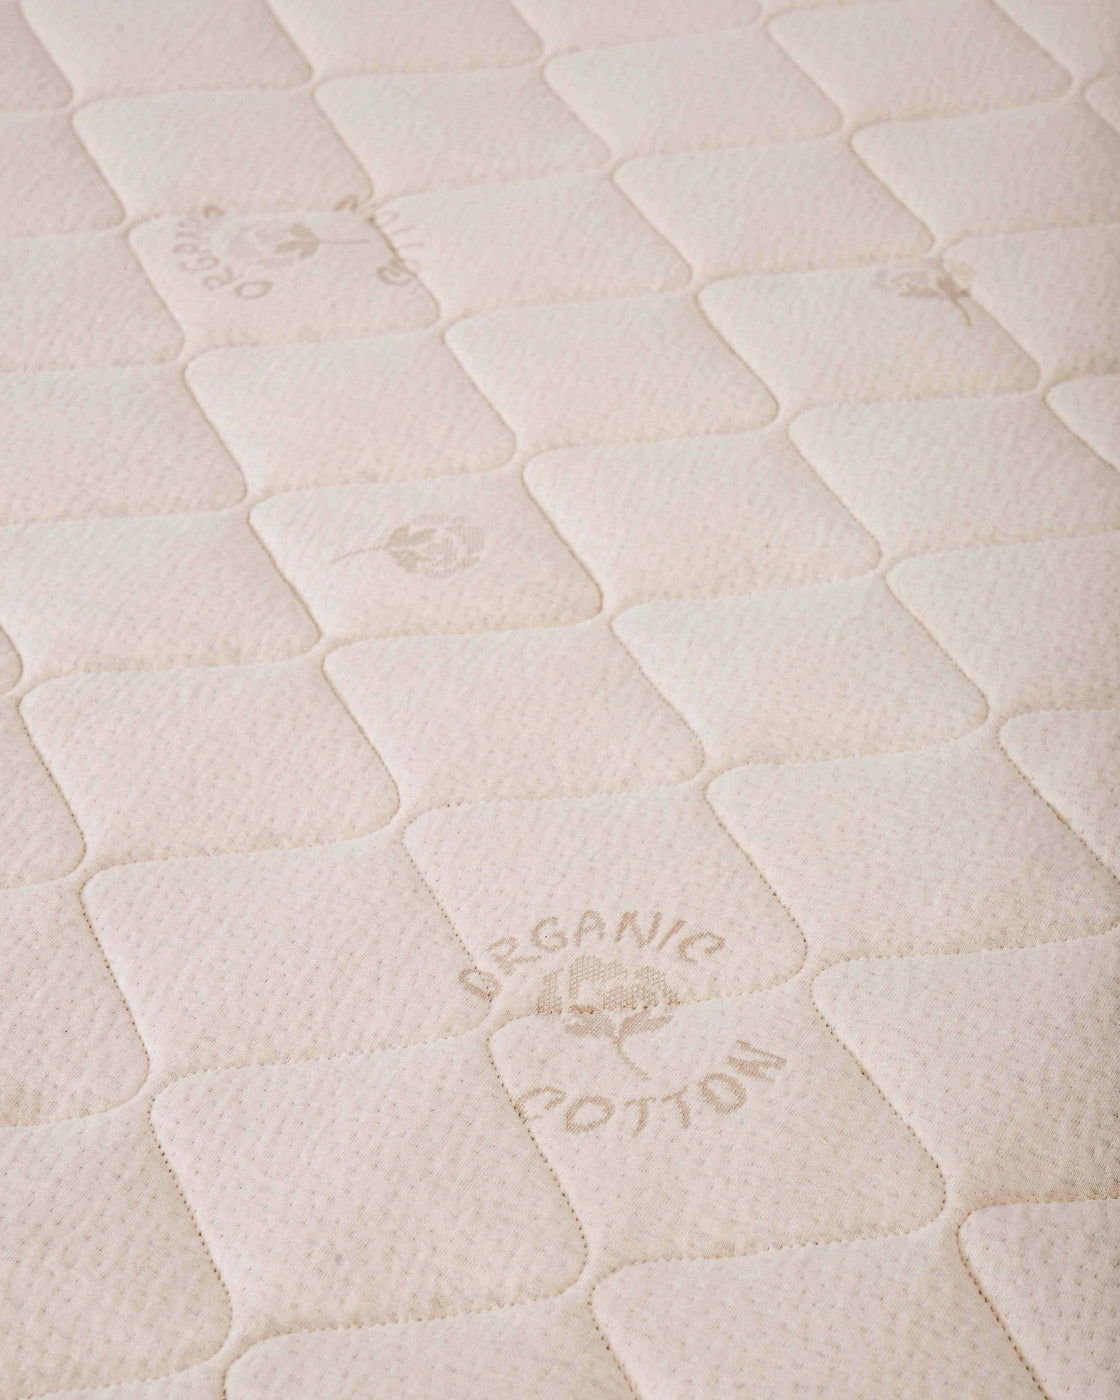 Chambord Latex Mattress